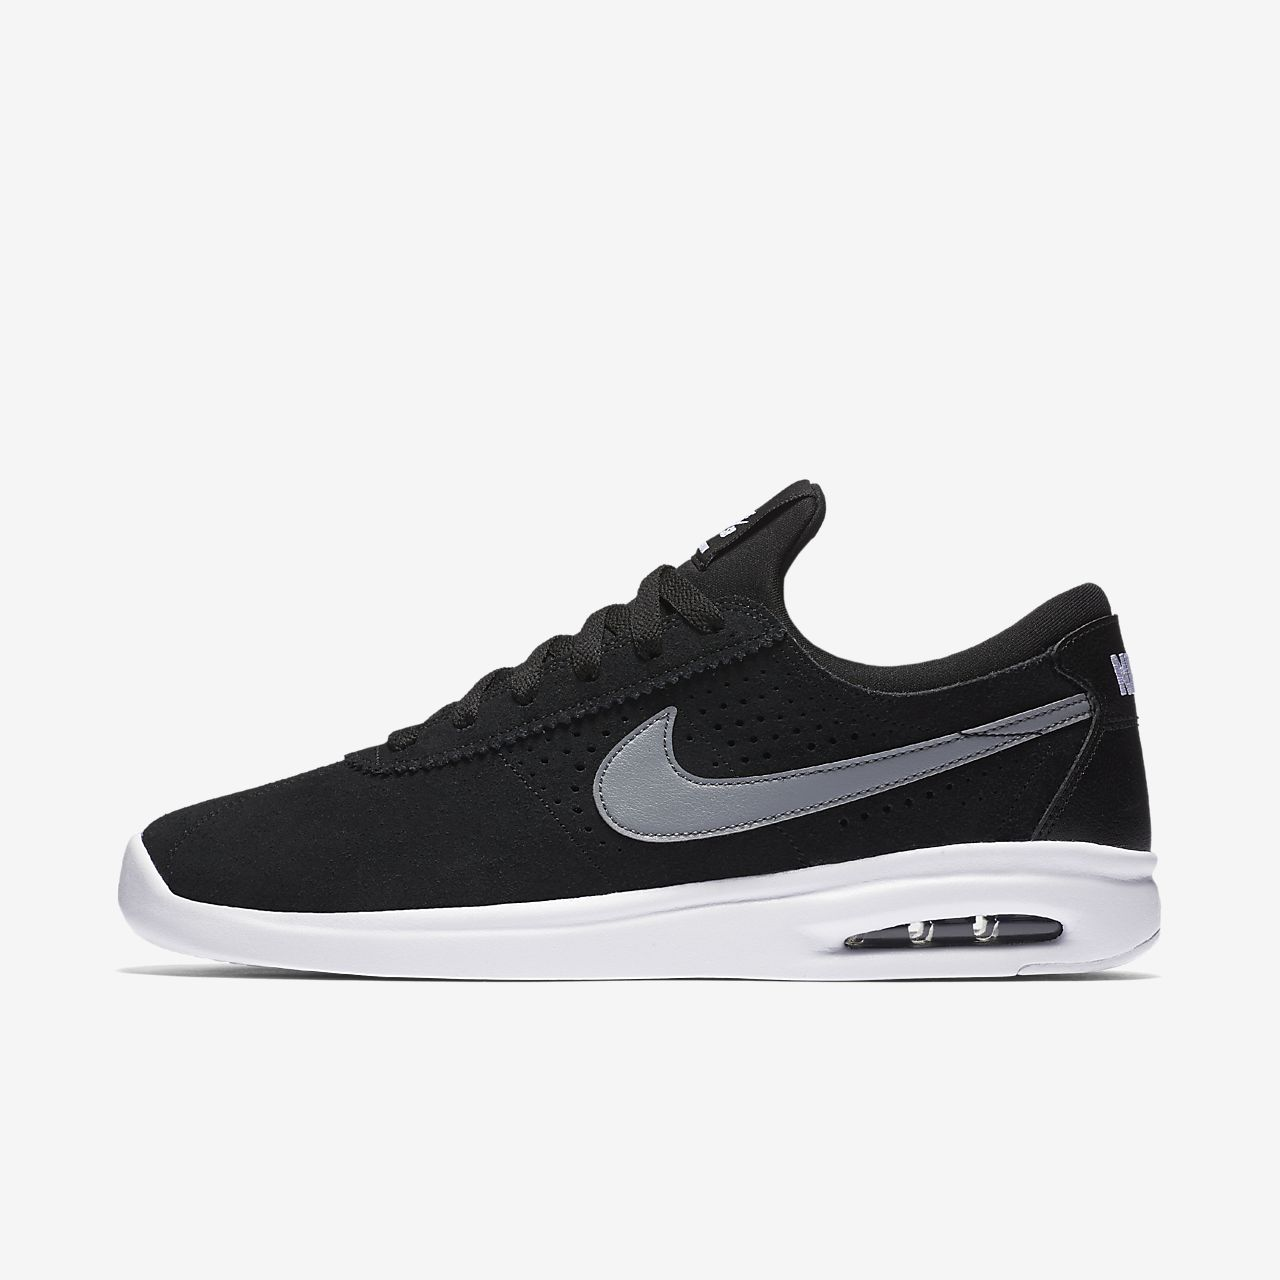 low priced d8721 b7f57 ... Chaussure de skateboard Nike SB Air Max Bruin Vapor pour Homme